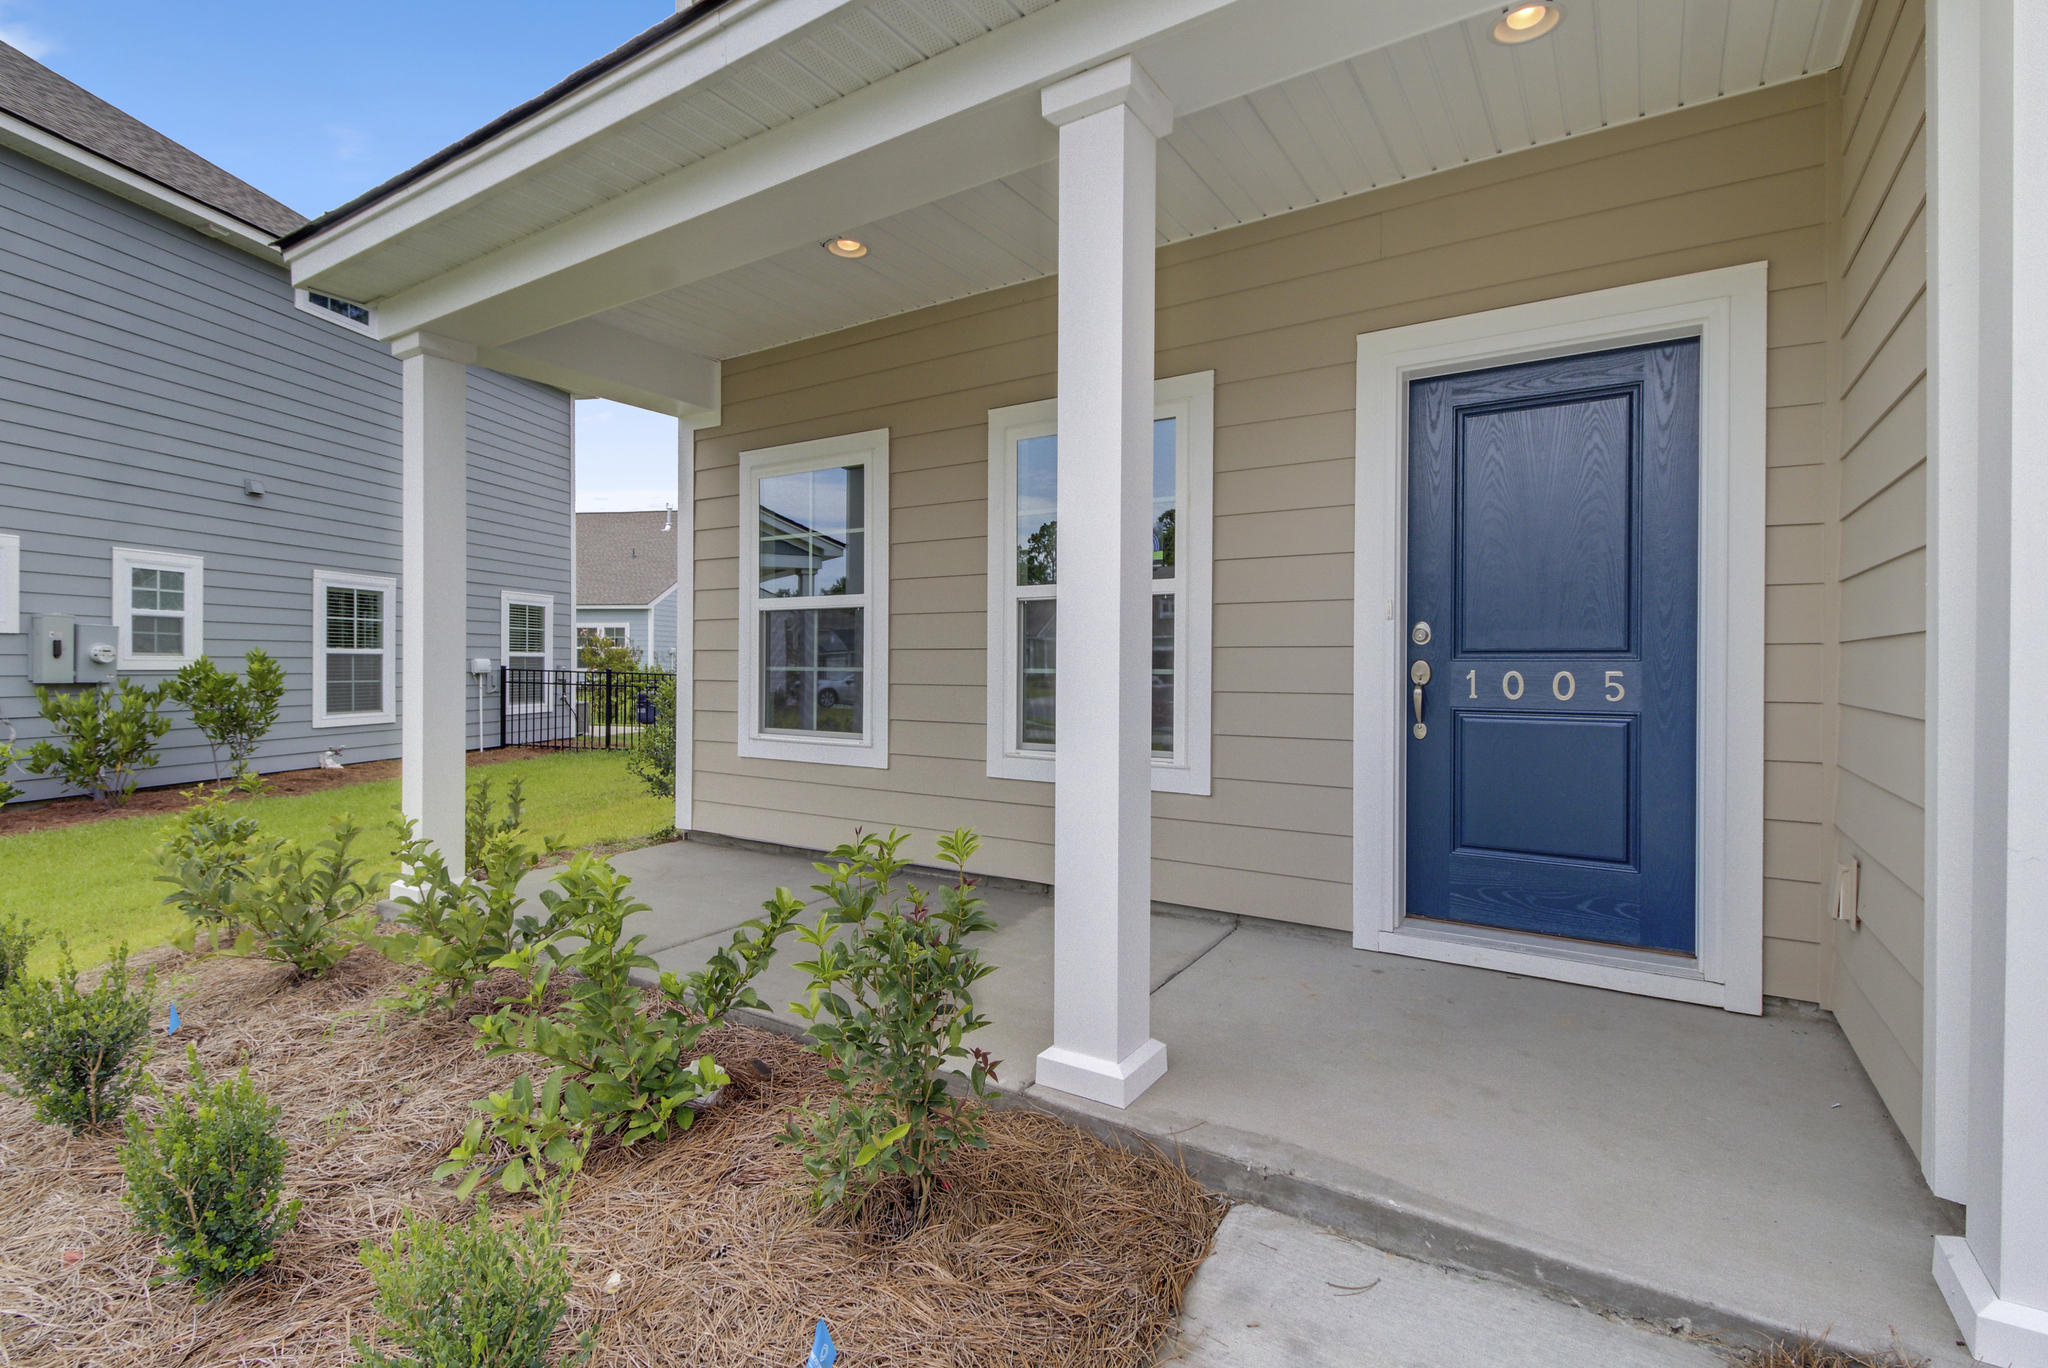 St. Johns Lake Homes For Sale - 1005 Pigeon, Johns Island, SC - 20